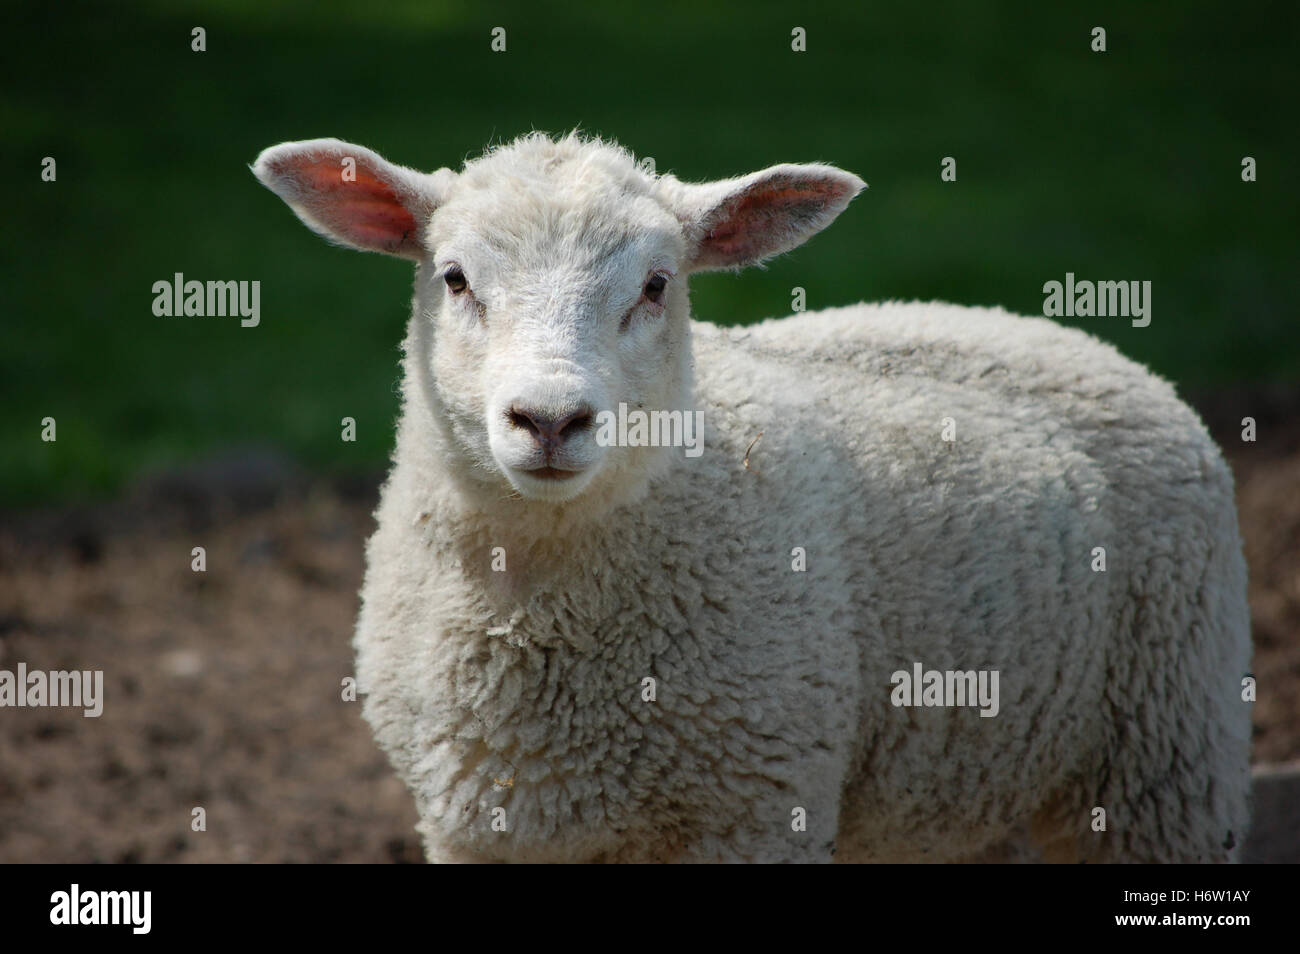 sweet animal agriculture farming field sheep wool easter spring bouncing bounces hop skipping frisks jumping jump - Stock Image